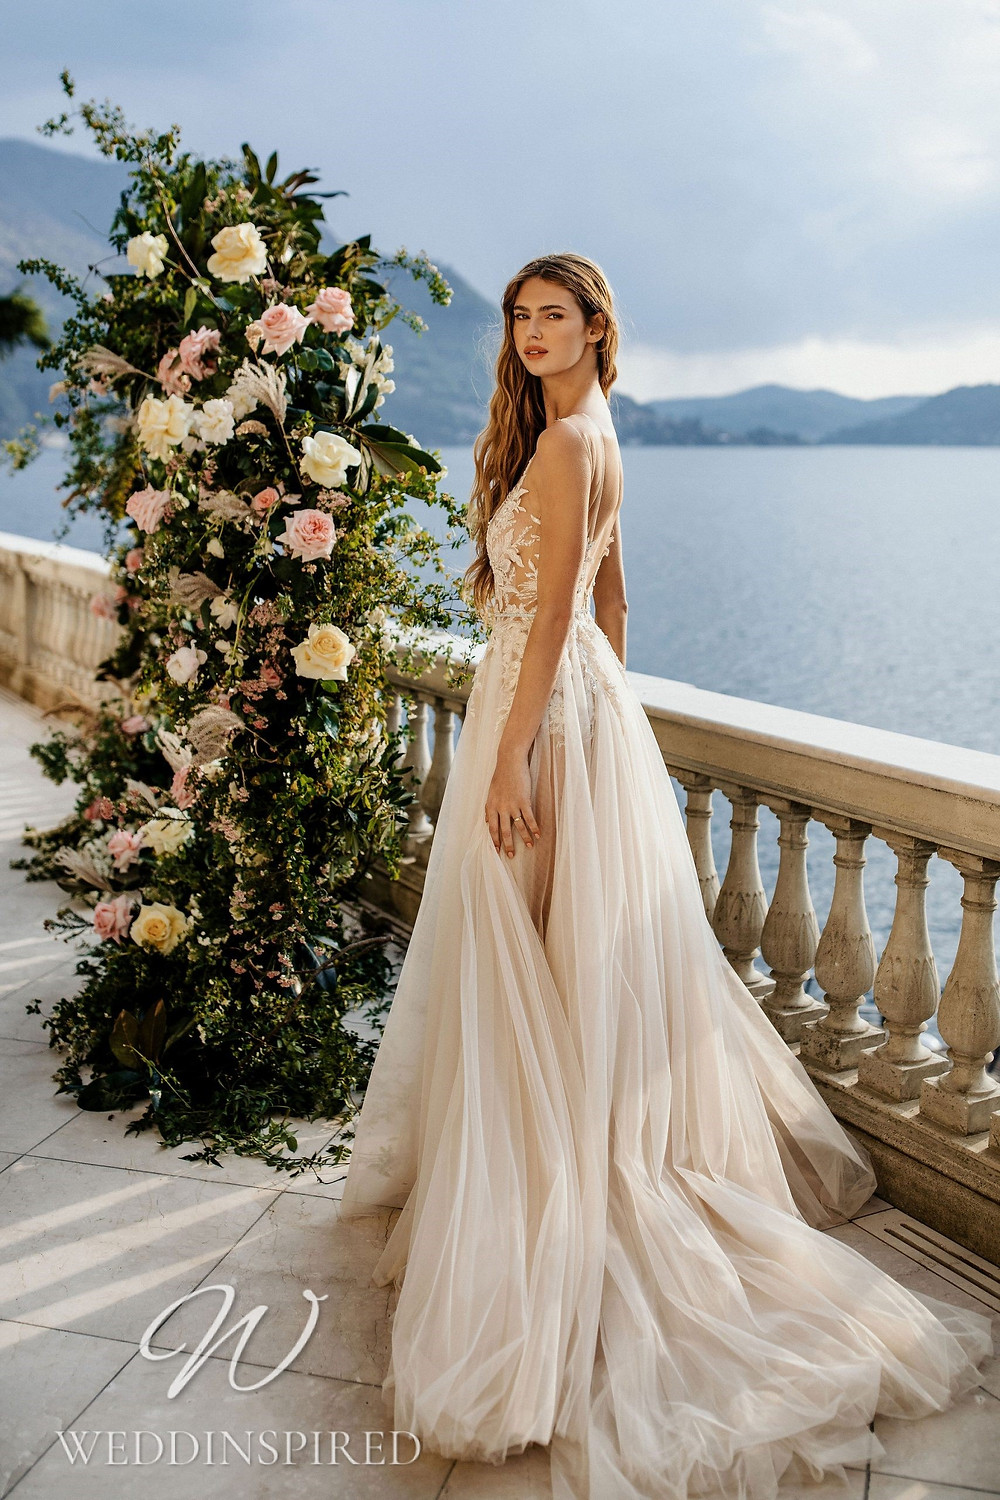 A Berta 2022 blush lace and tulle A-line wedding dress